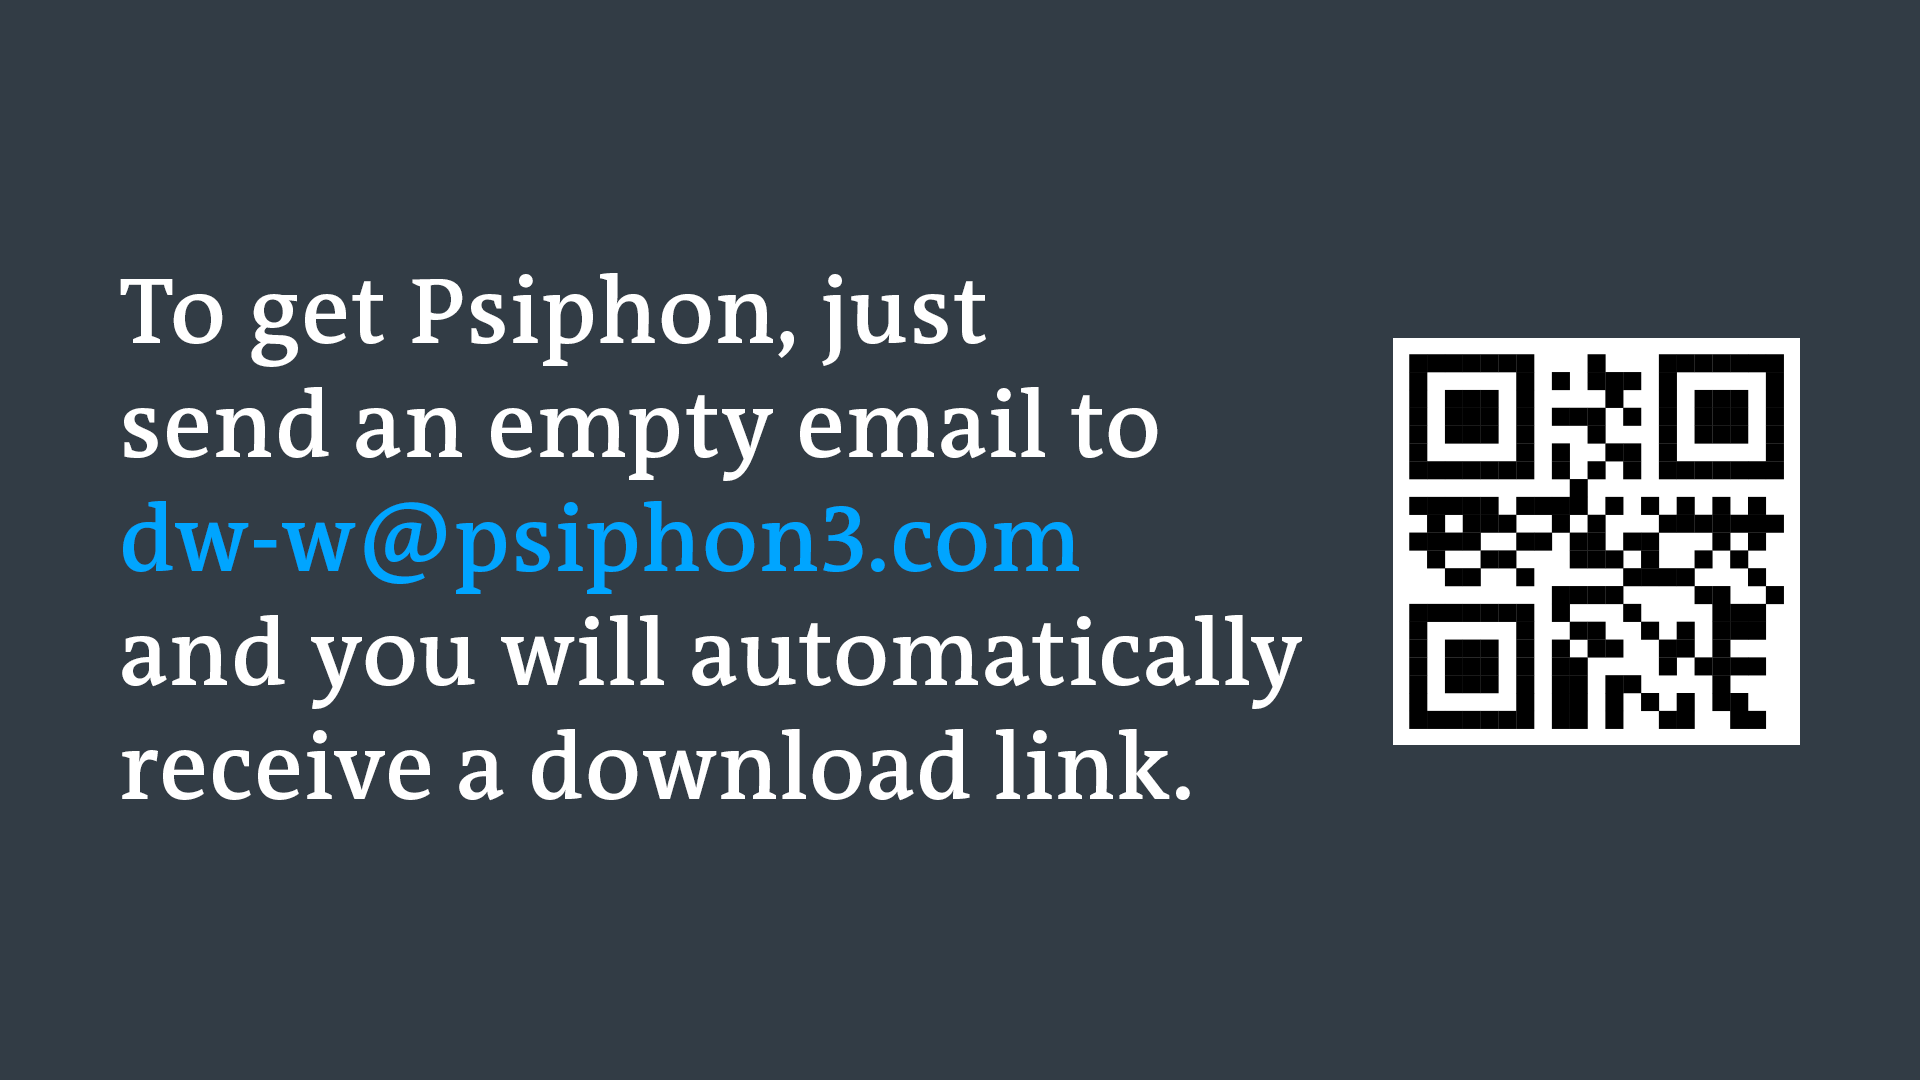 Text says: To download Pisphon, send a blank email to dw-w@psiphon3.com